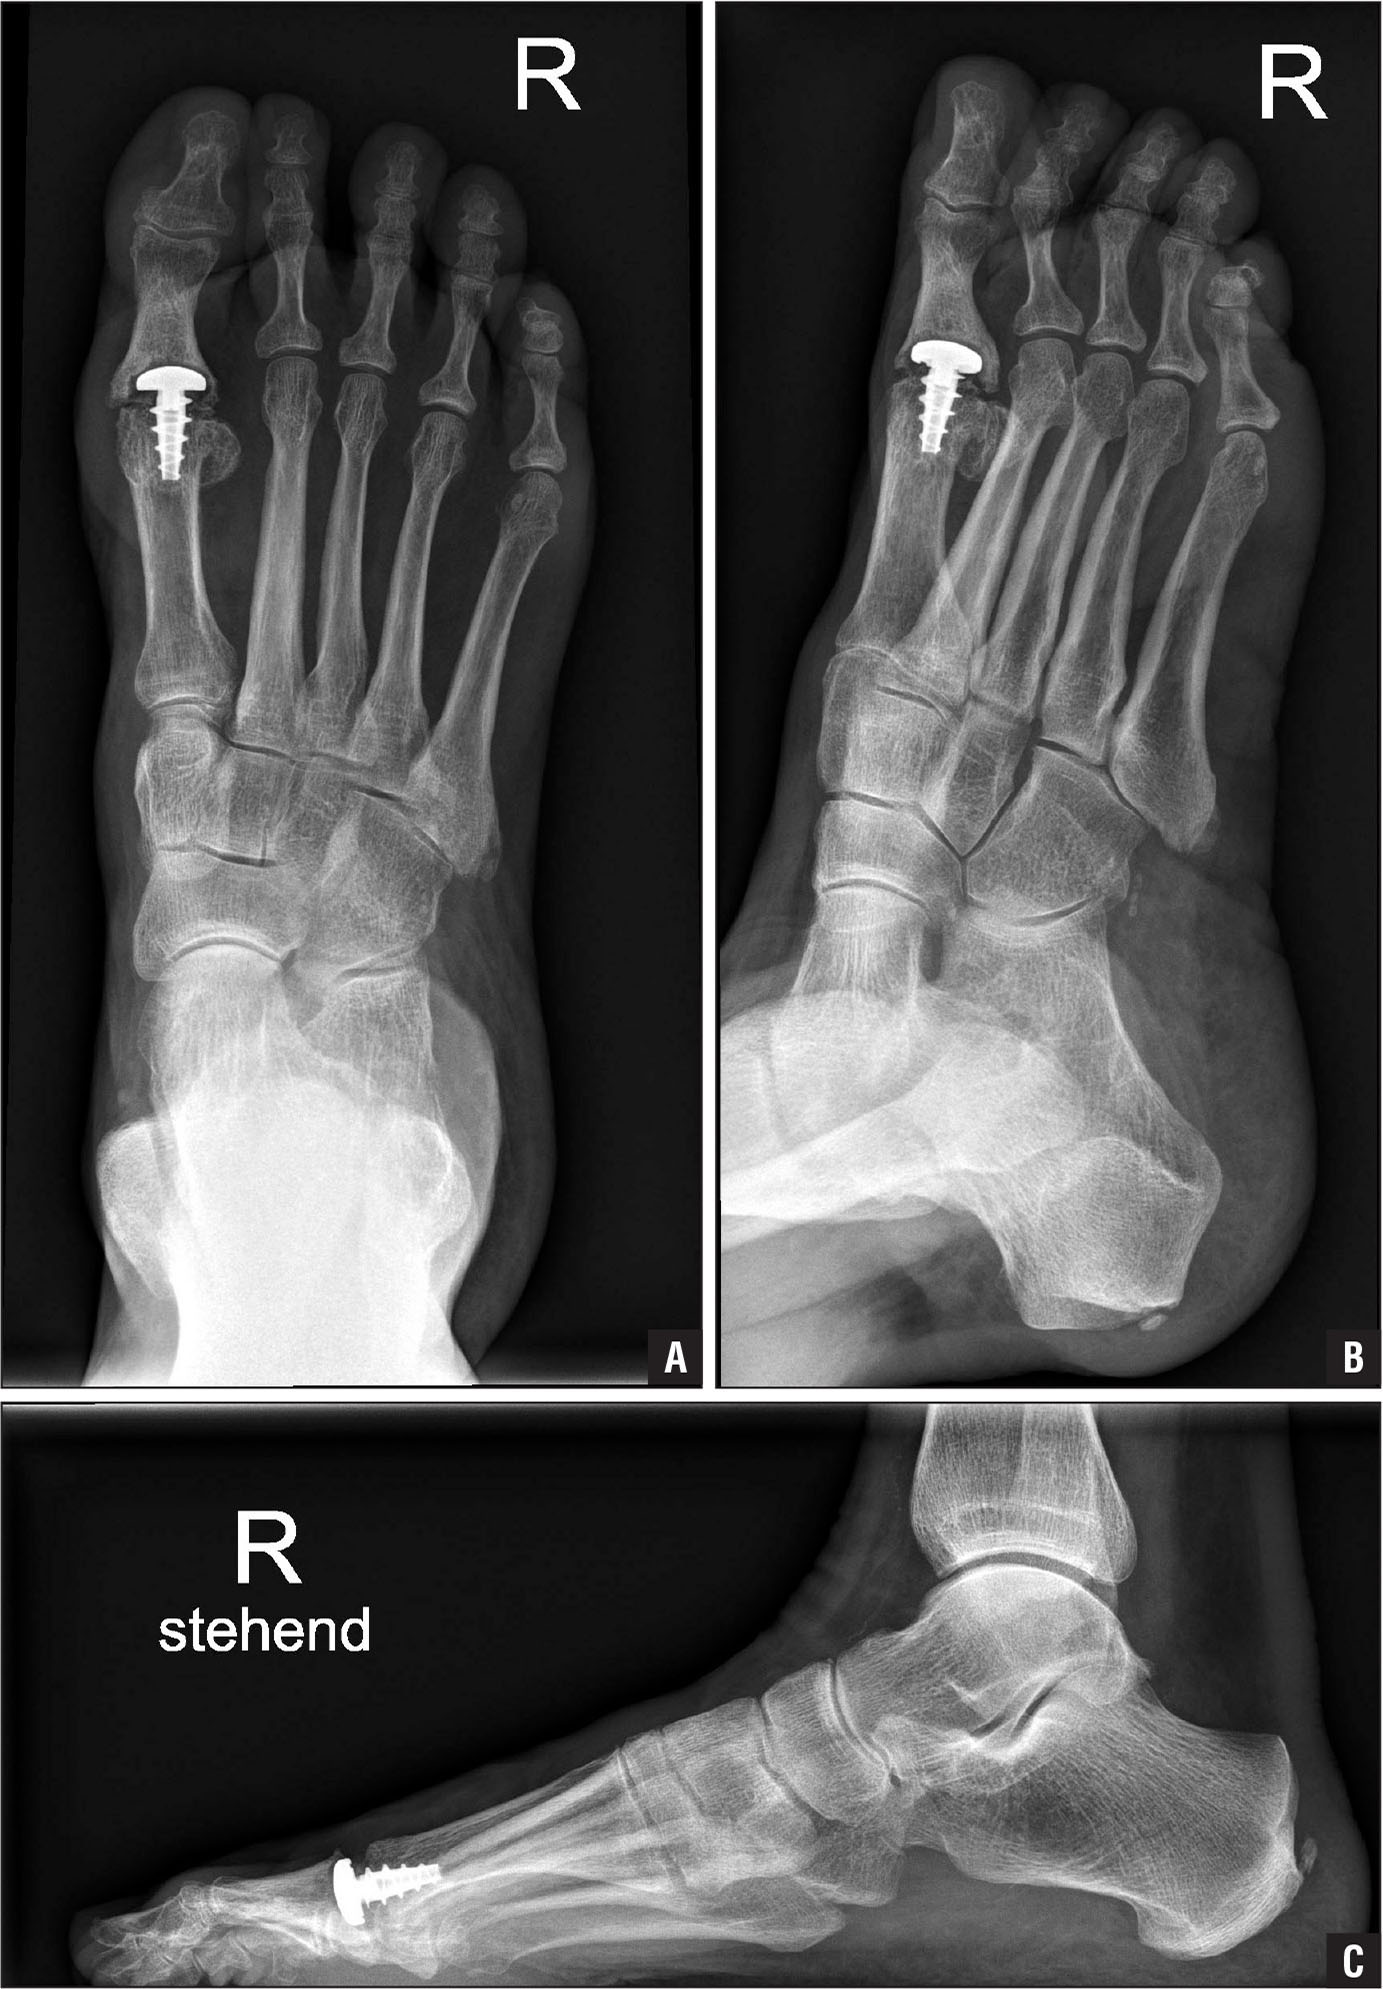 A 77-year-old patient 4 years after implantation of a first metatarsophalangeal classic HemiCAP (Arthrosurface Inc, Franklin, Massachusetts) hemiarthroplasty prosthesis without dorsal flange. The patient was very satisfied with the postoperative functional result and had no pain. Standard weight-bearing dorsoplantar (A), oblique (B), and lateral (C) postoperative radiographs of the foot showed significant osseous dysplastic changes of the proximal phalangeal base caused by the resurfacing implant of the metatarsal head.